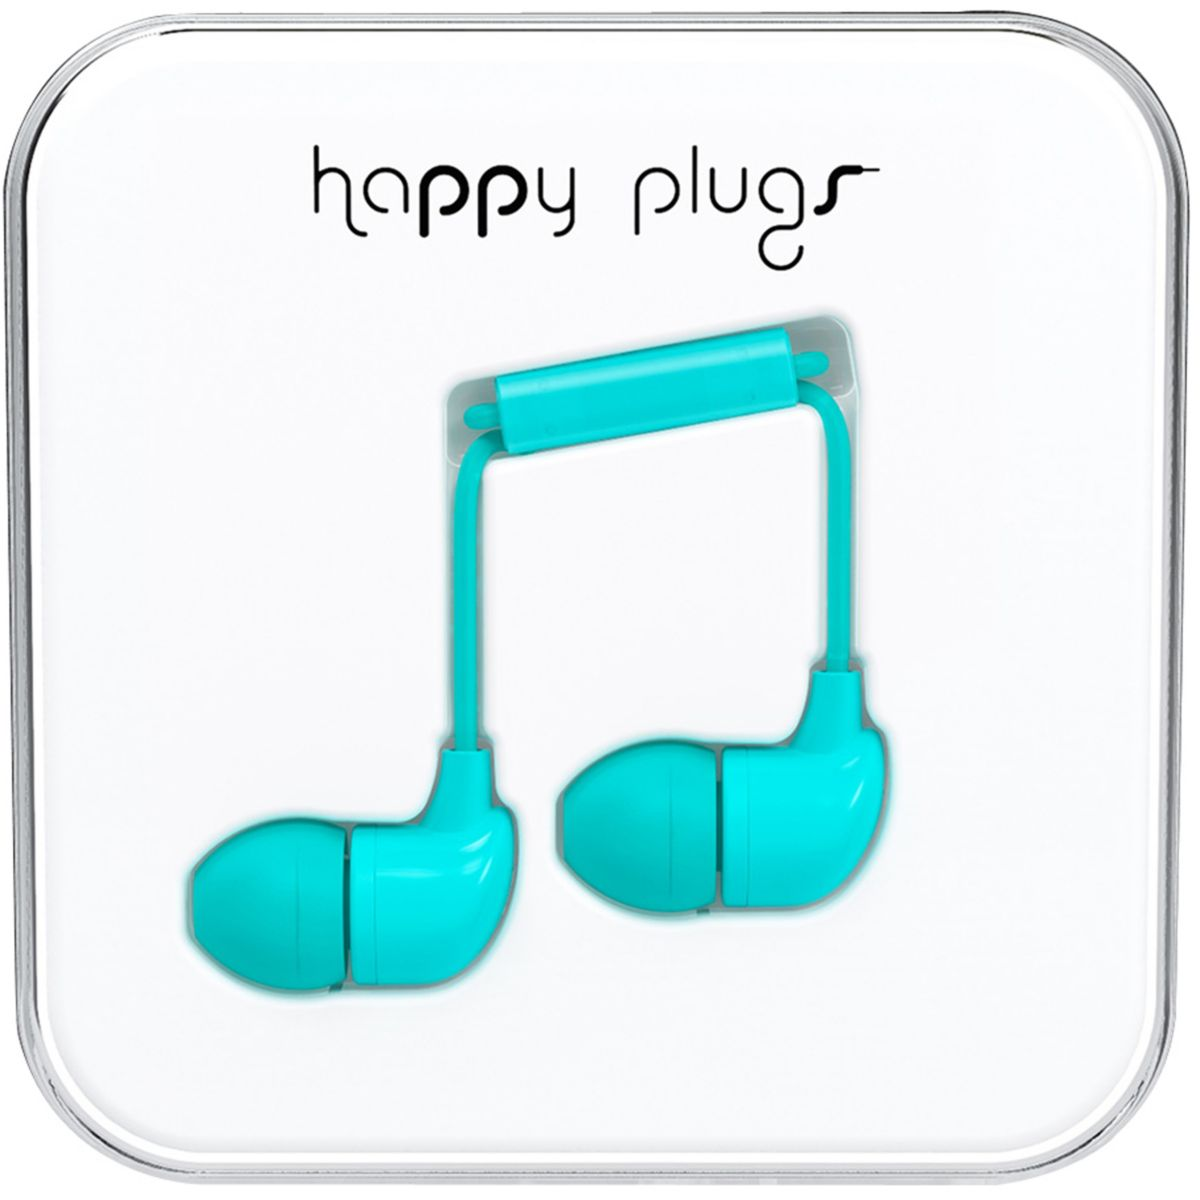 Ecouteurs avec micro HAPPY PLUGS In-ear turquoise